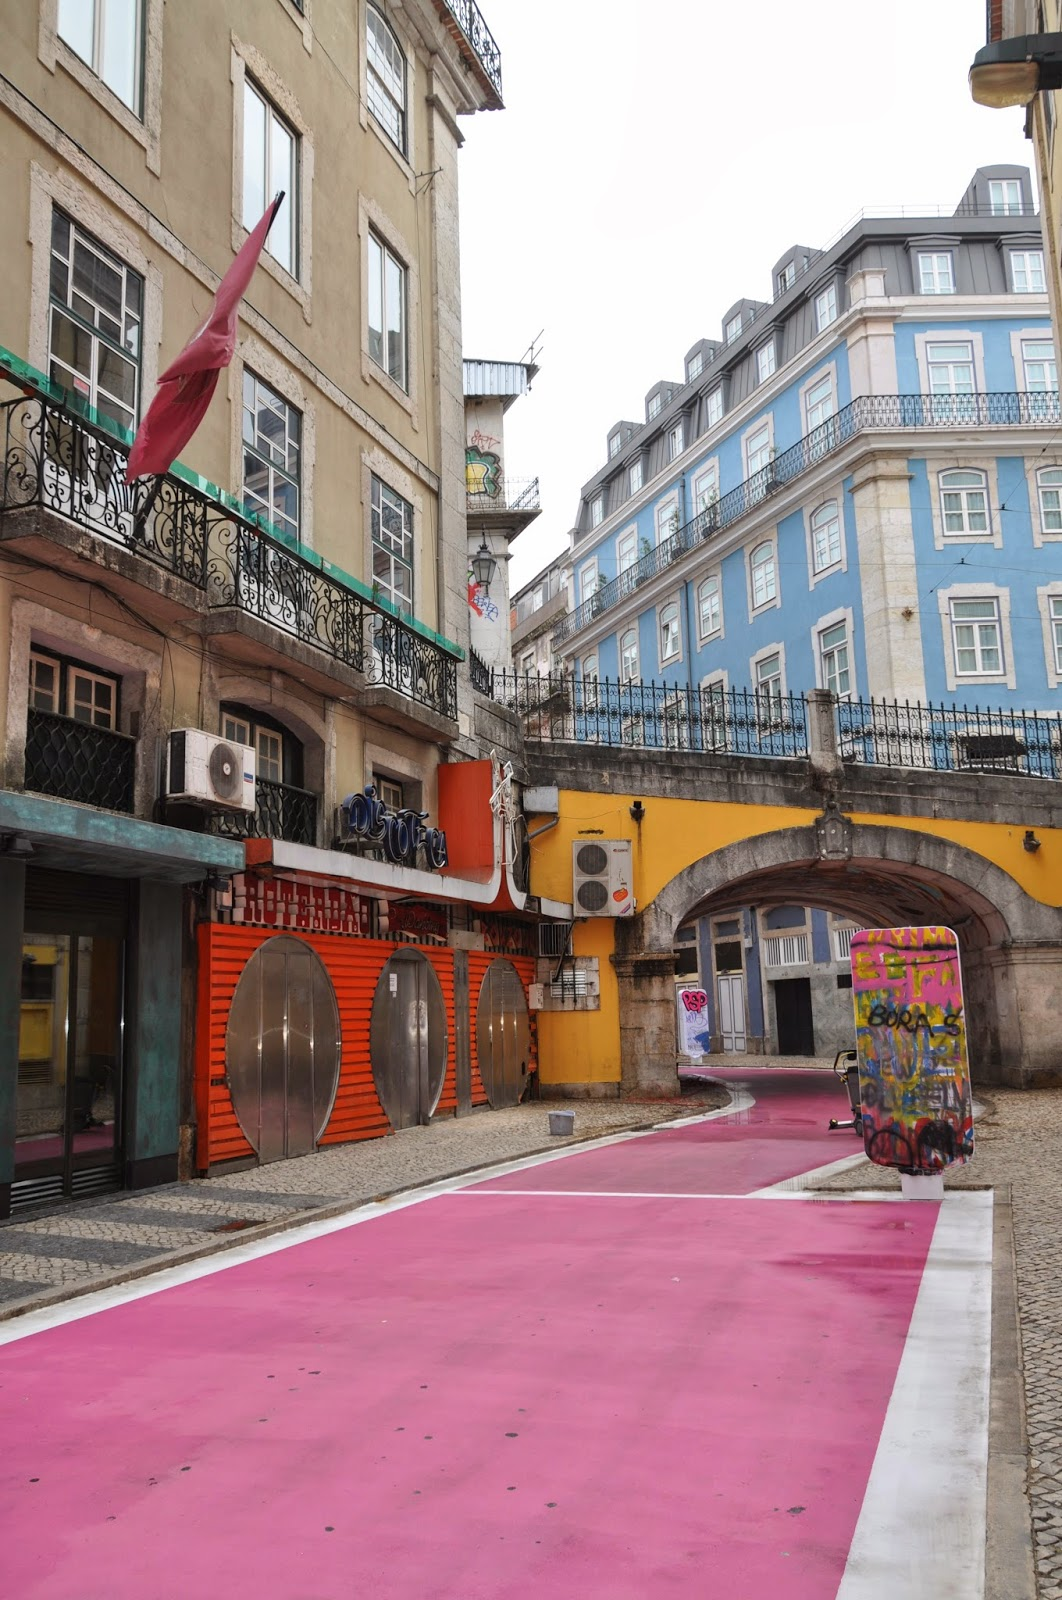 iolanda andrade The pink street in Cais do Sodr area Lisbon  The 26th of October 2013